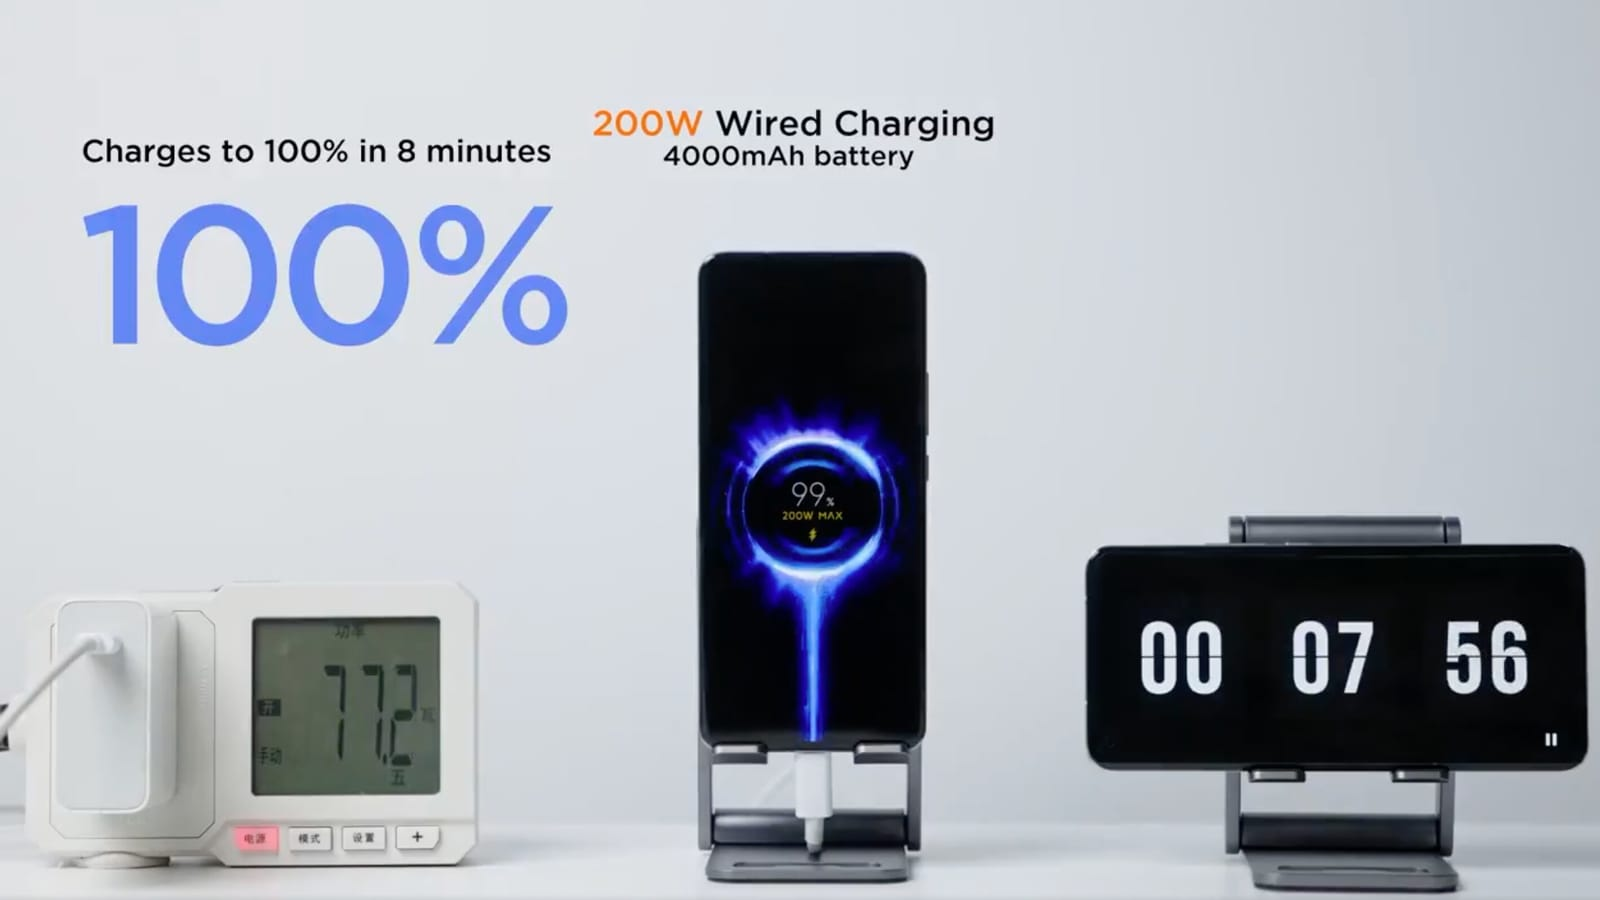 Xiaomi shows technology that can fully charge your phone in 8 minutes